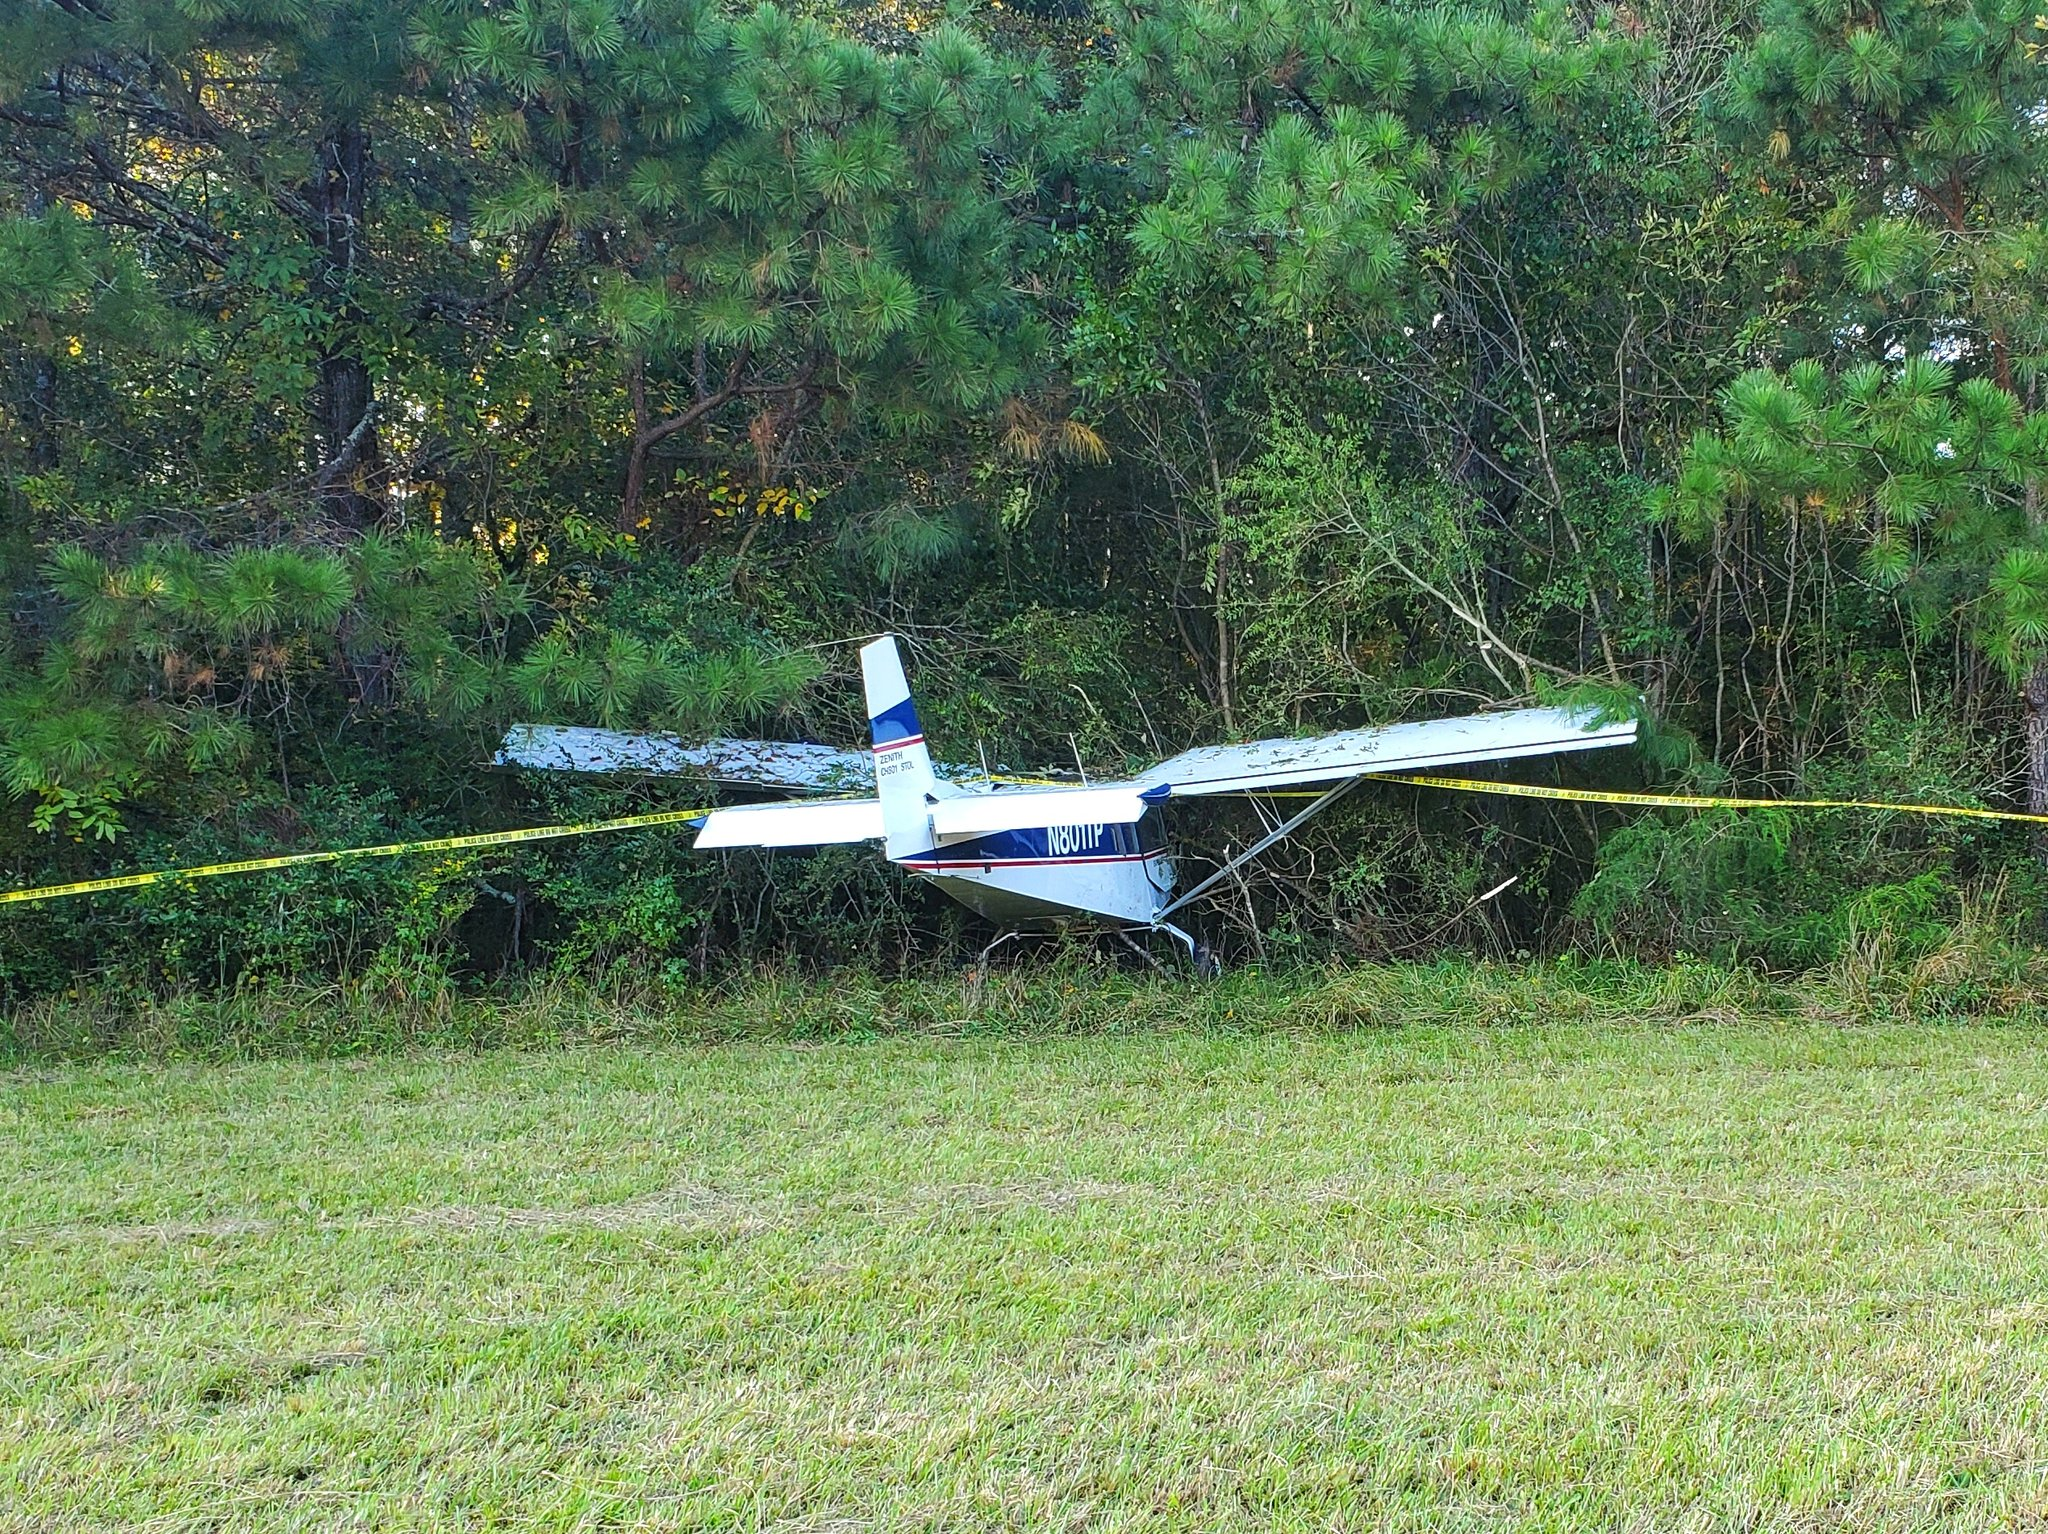 Plane crashes near Collegedale airport 10.12.2020. (Image: Tri-Community Volunteer Fire Department)